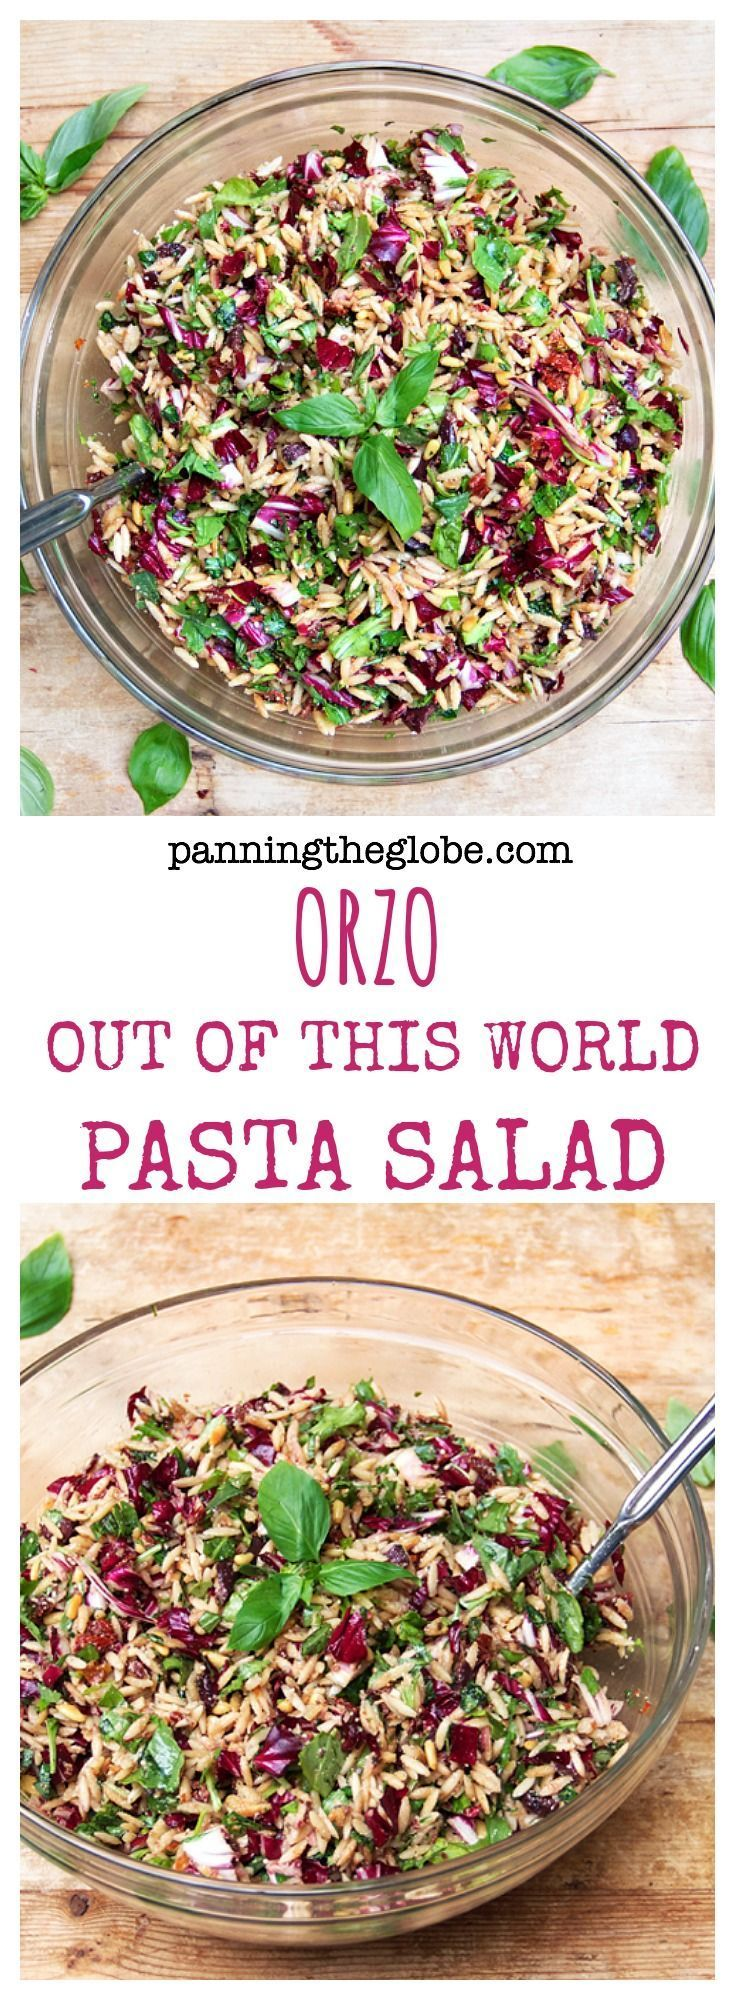 This is such a delicious pasta salad - it makes a great side dish for any occasion.